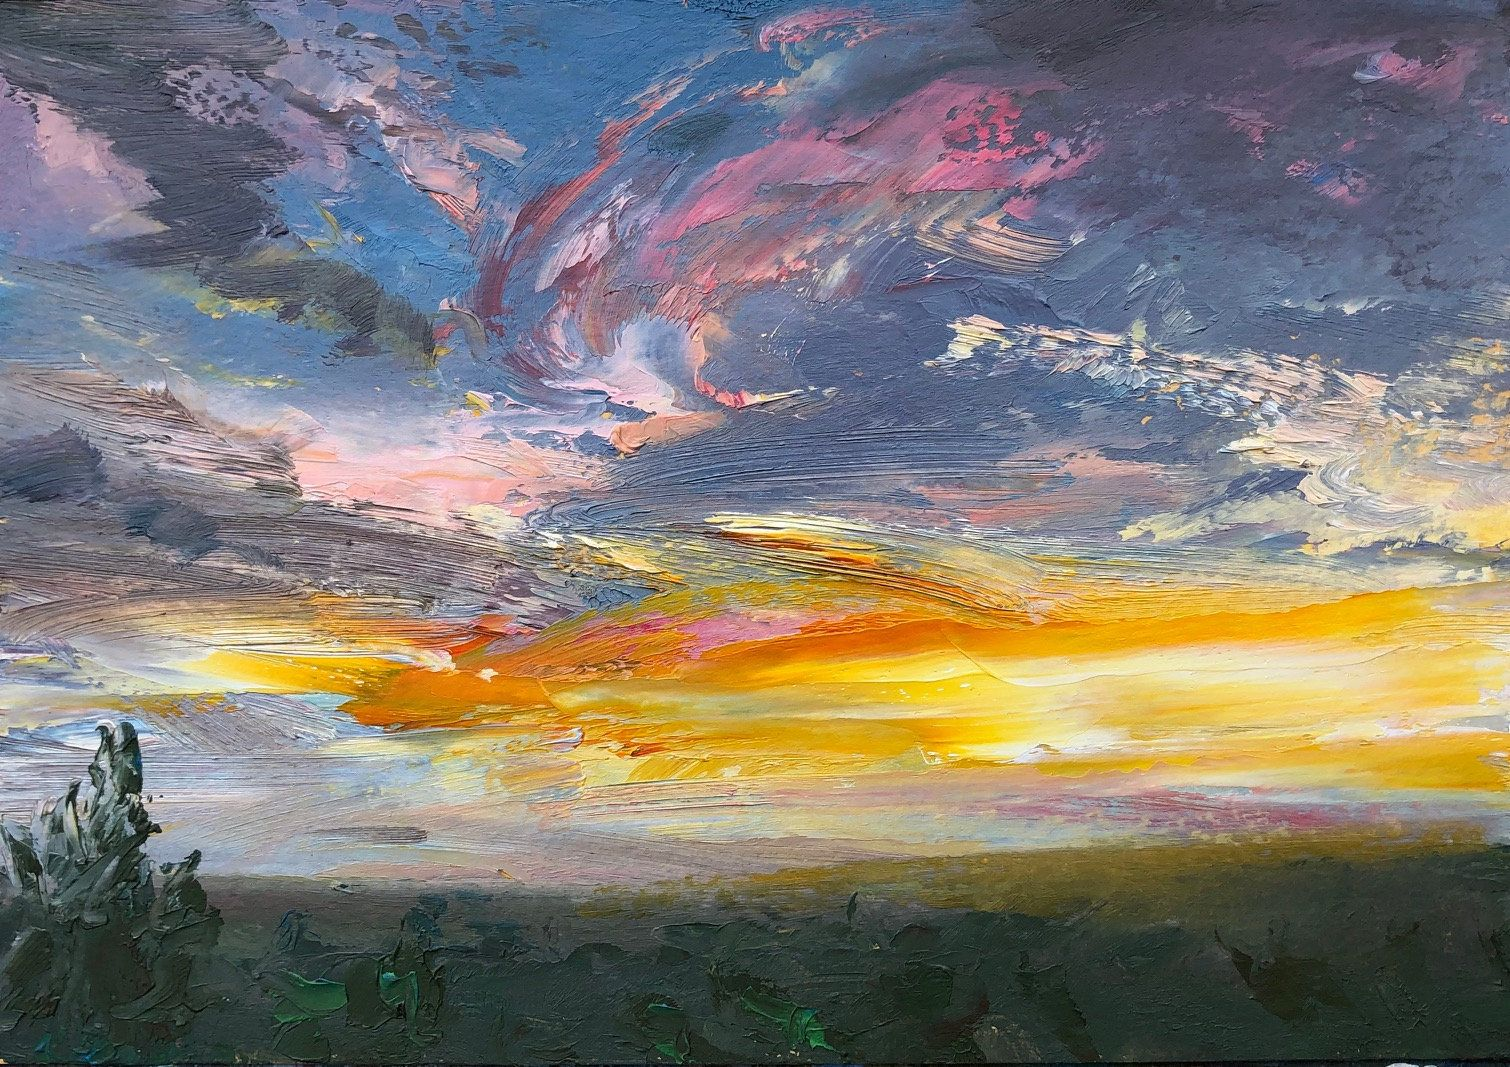 Original Oil Painting On Paper 6 X 8 25 Landscape Sunset